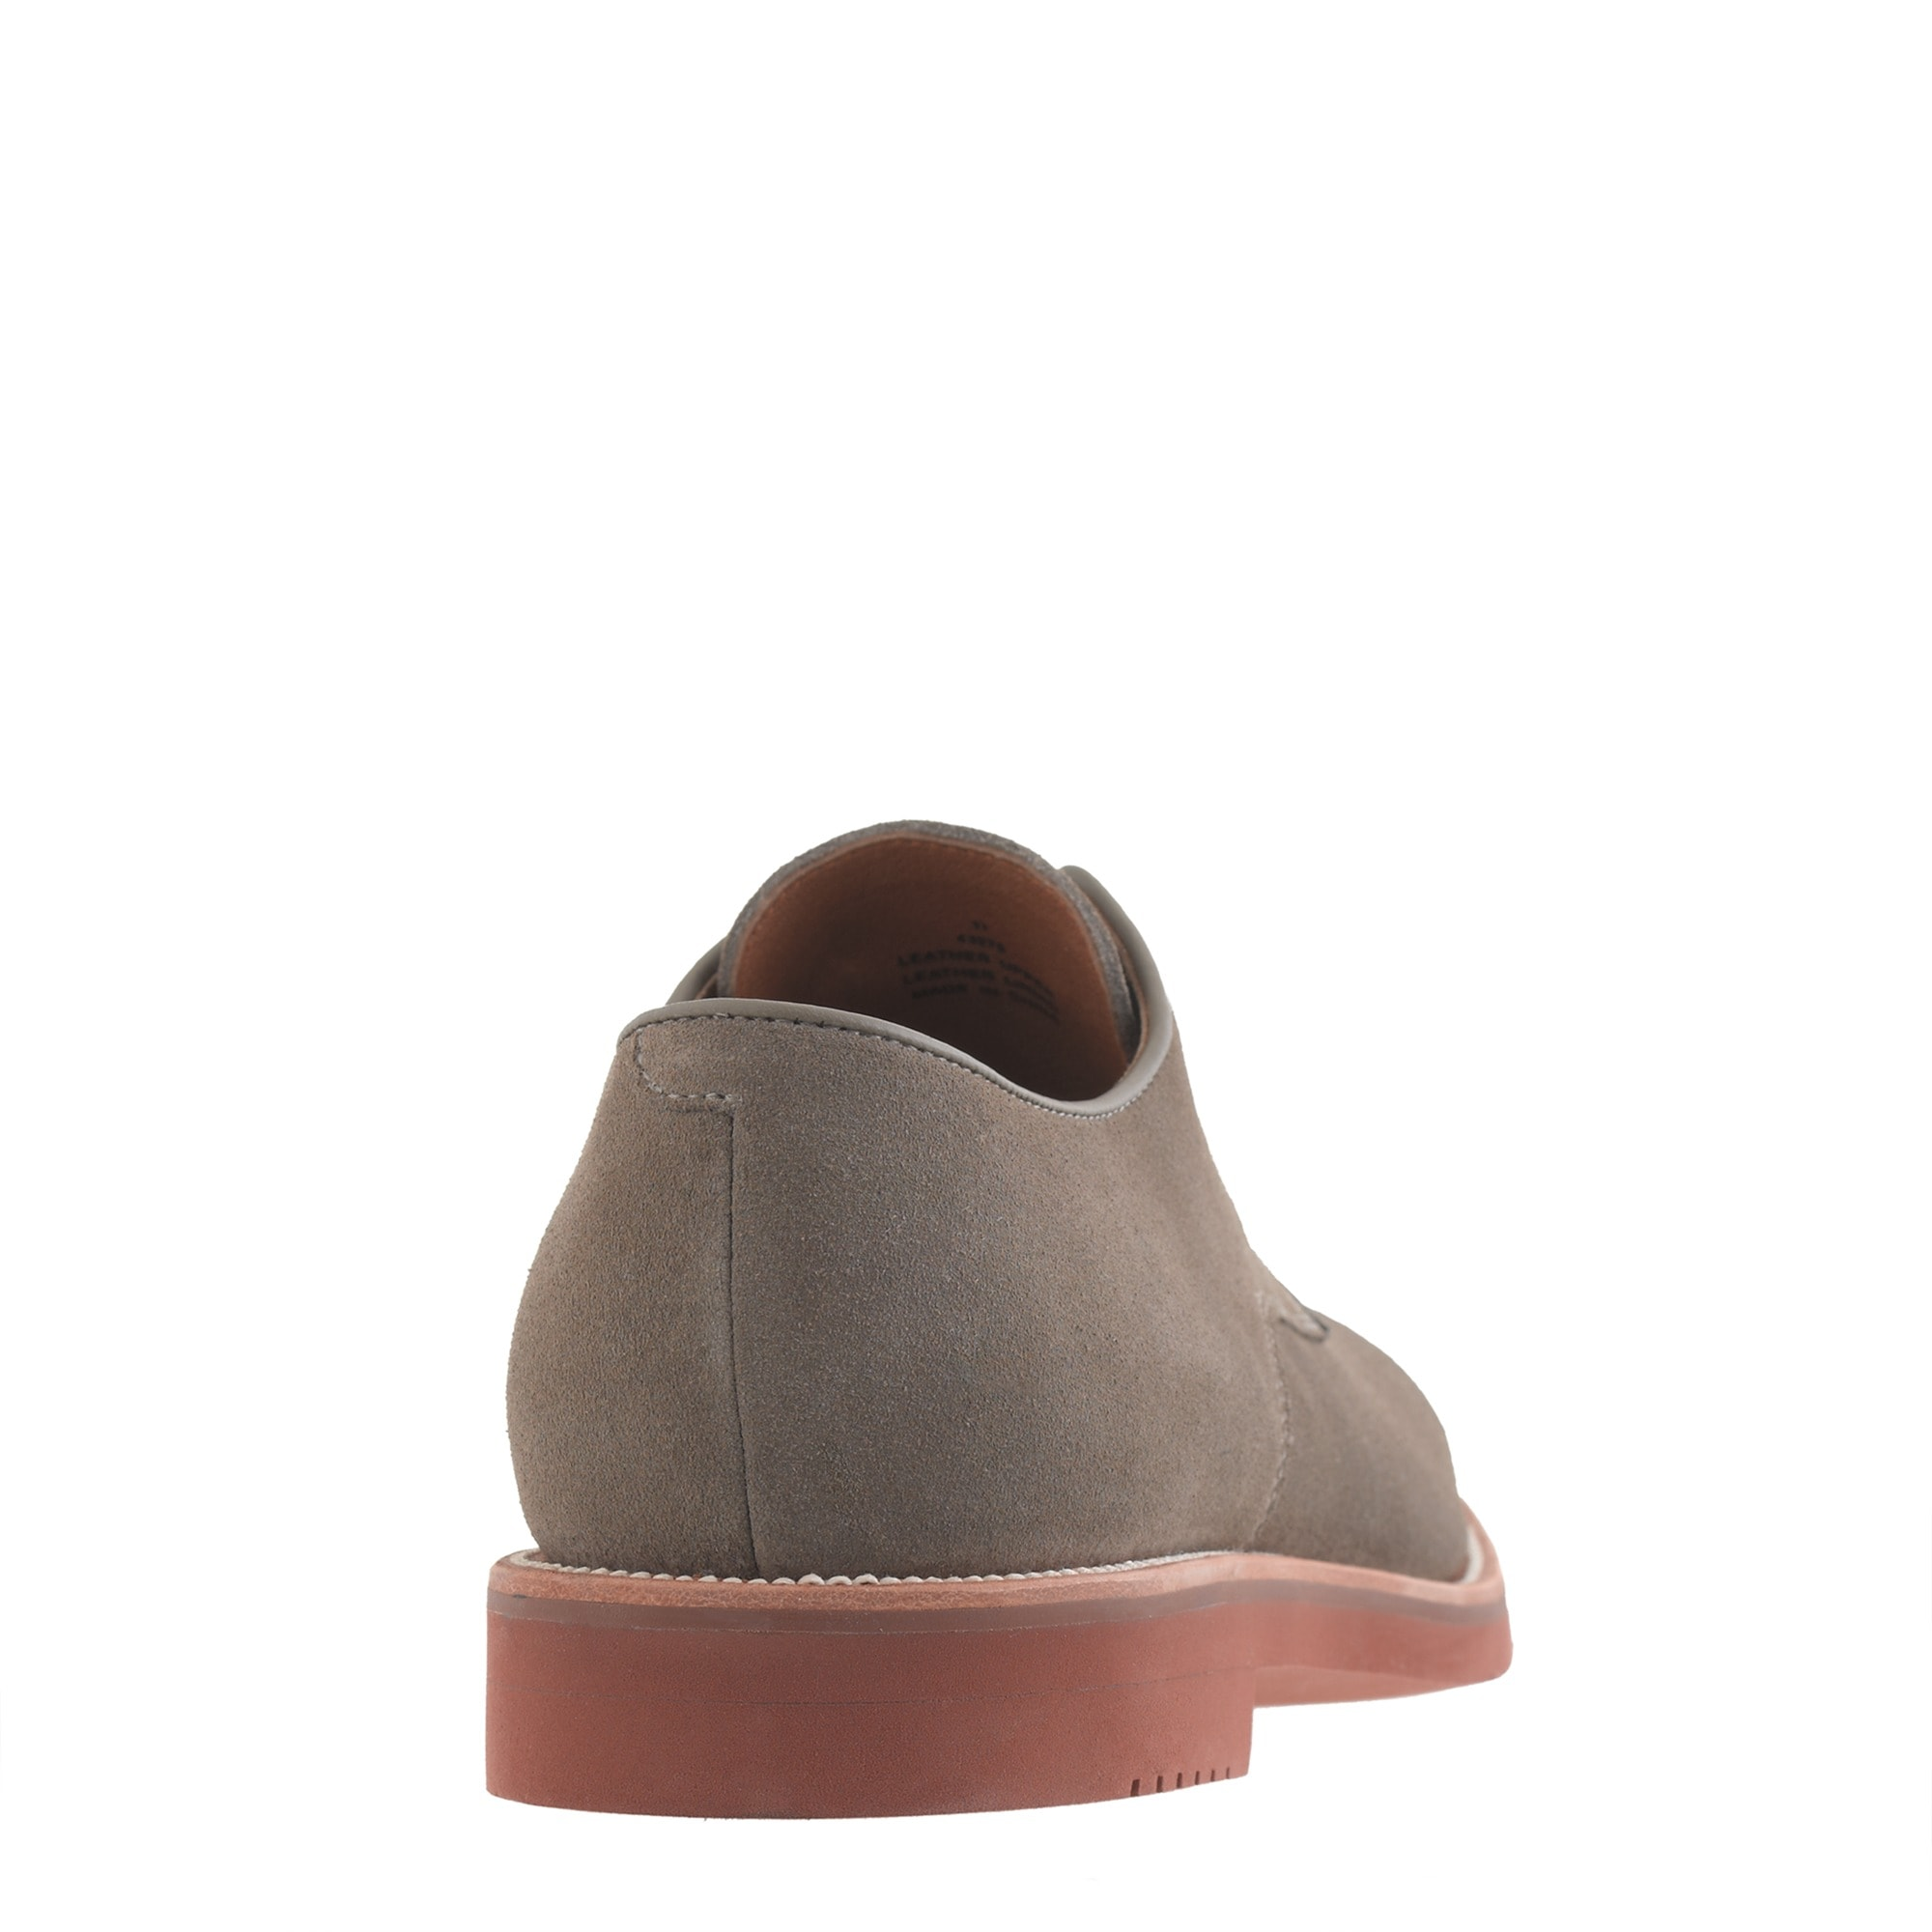 Kenton suede bucks